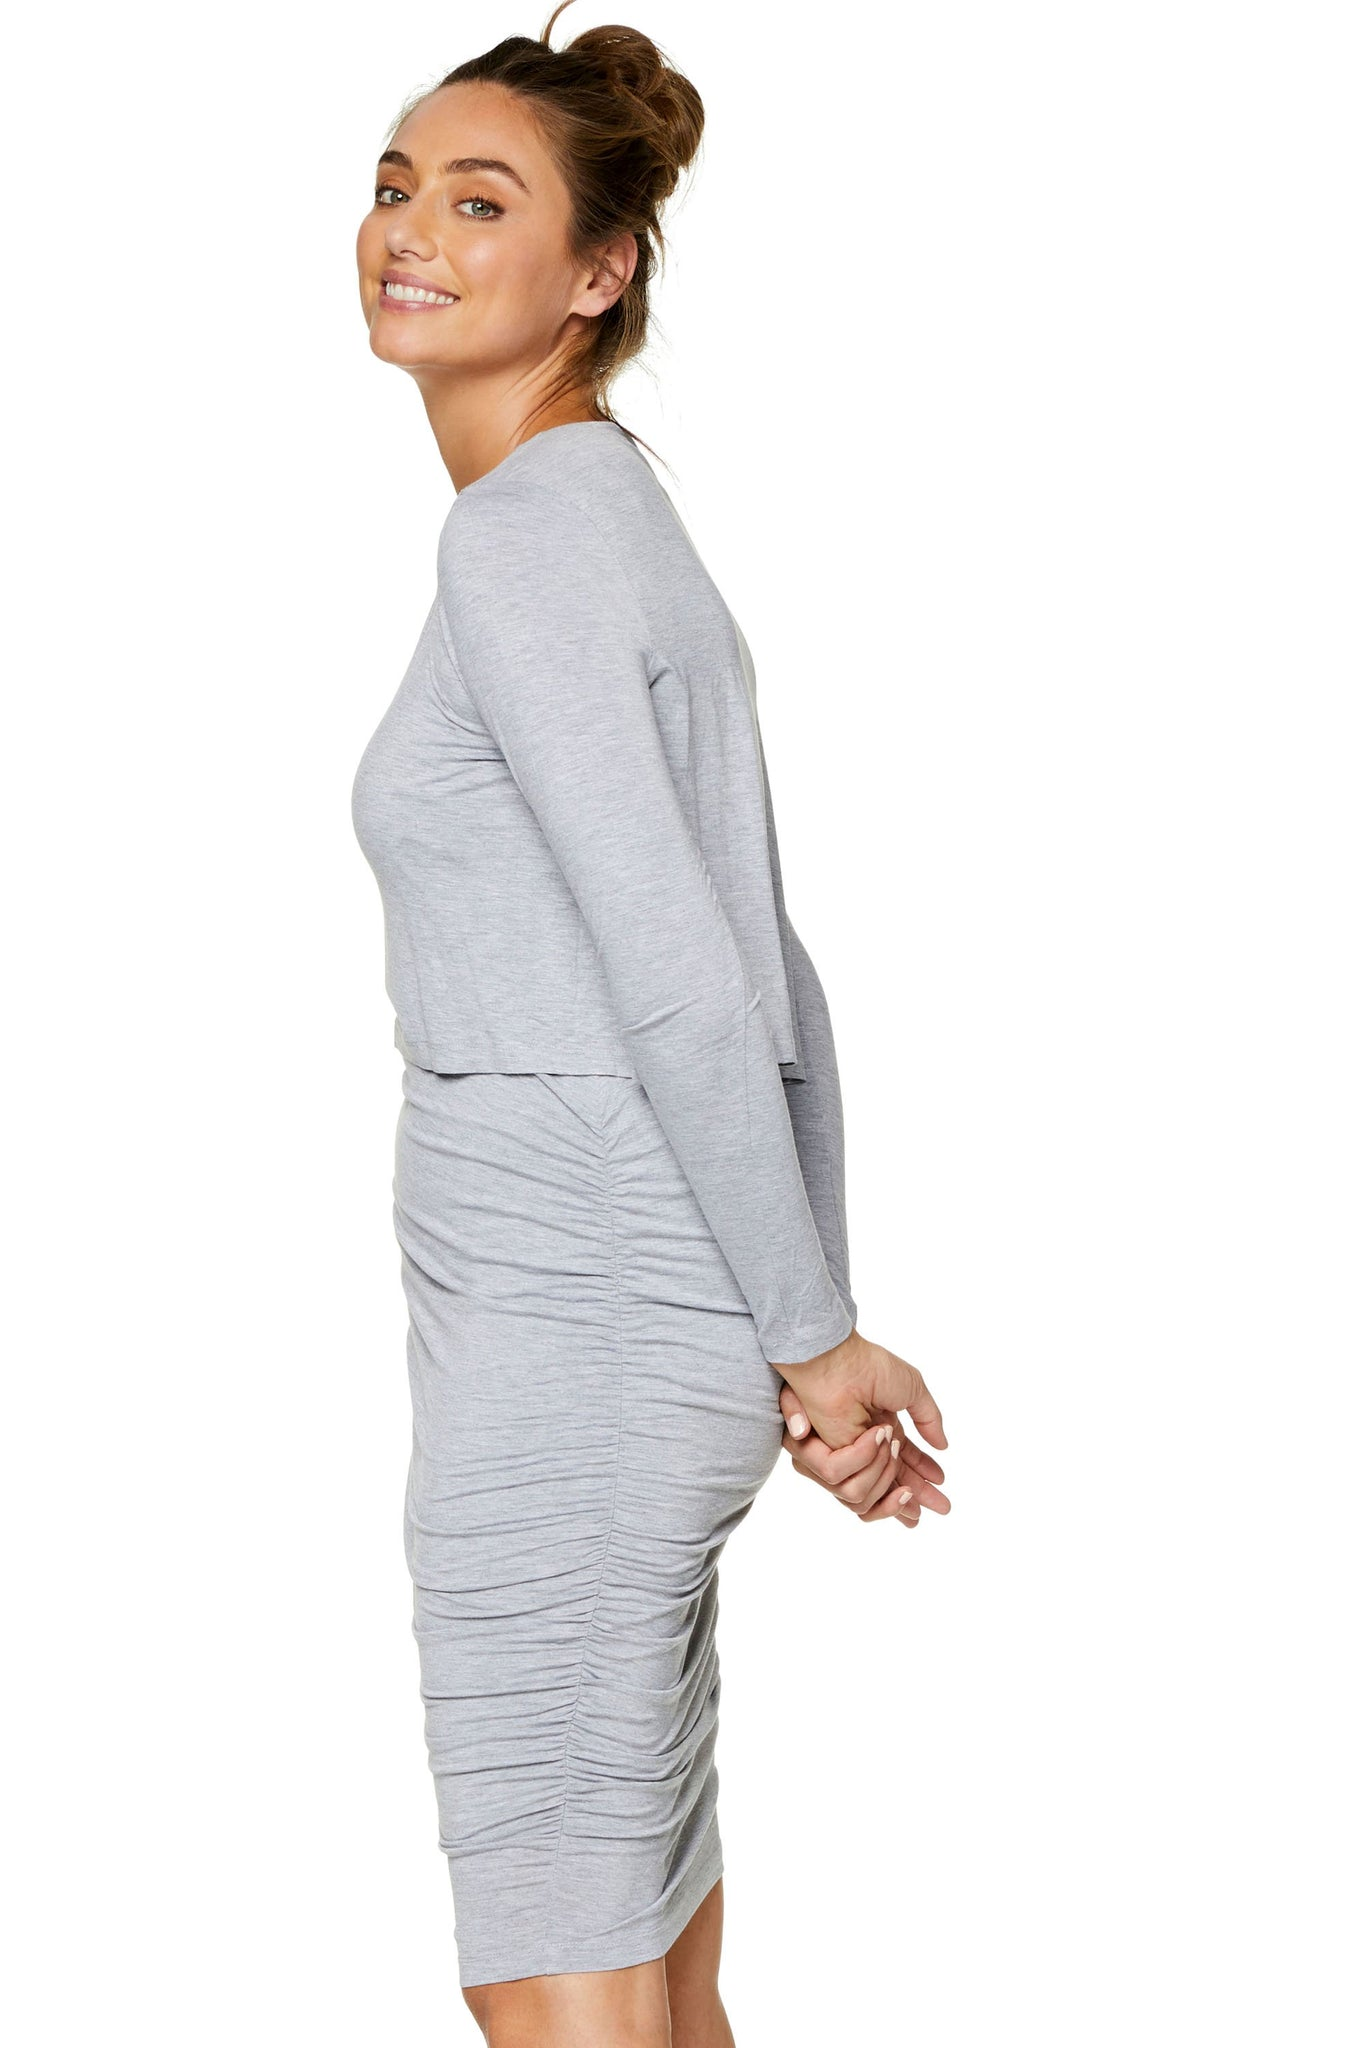 Long sleeve maternity and nursing dress - Grey 7